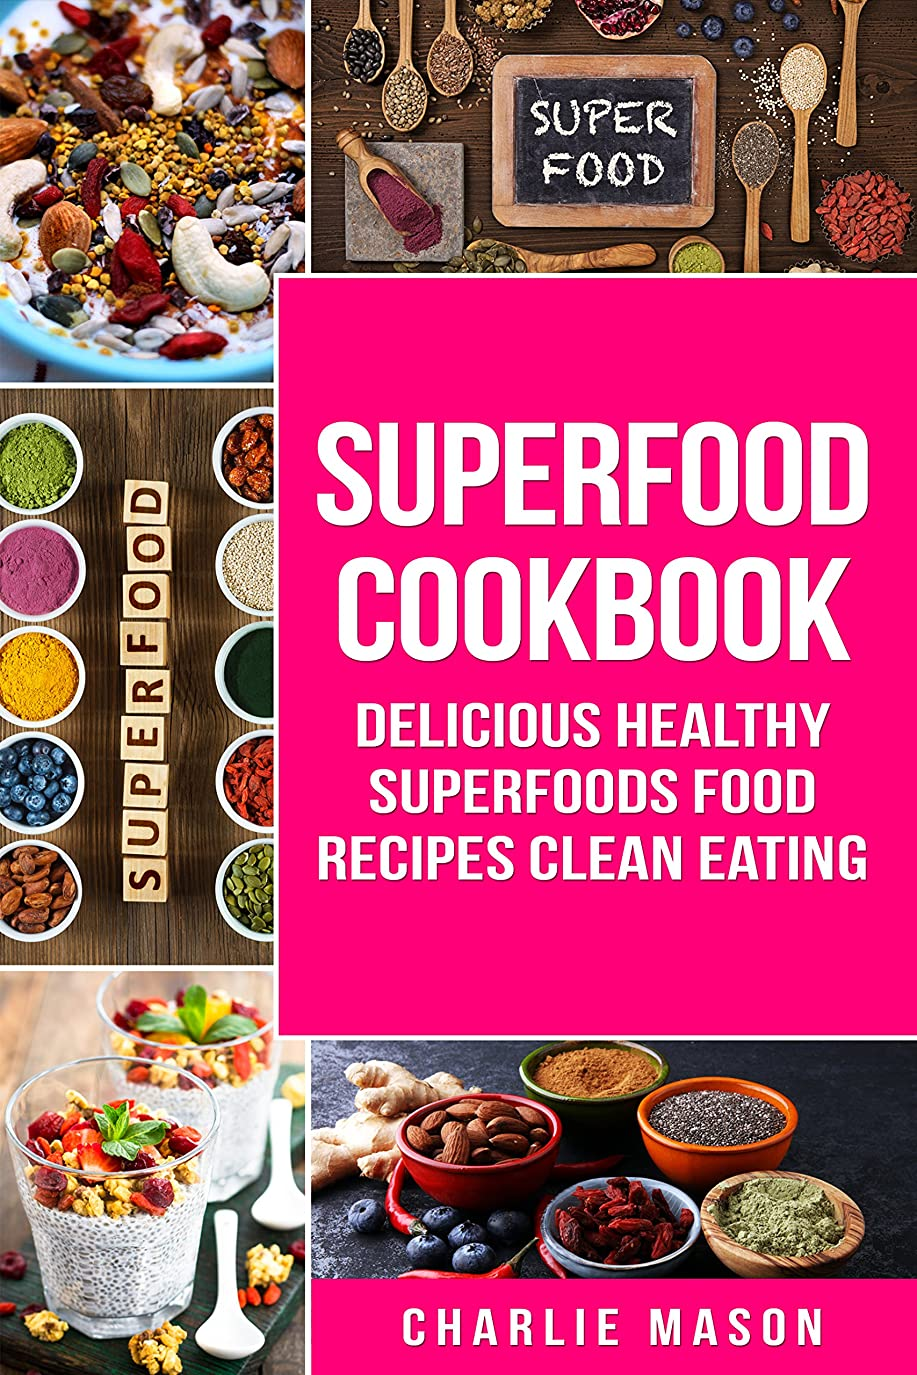 Superfoods: Superfoods Cookbook Delicious Healthy Superfoods Food Recipes Clean Eating (English Edition)